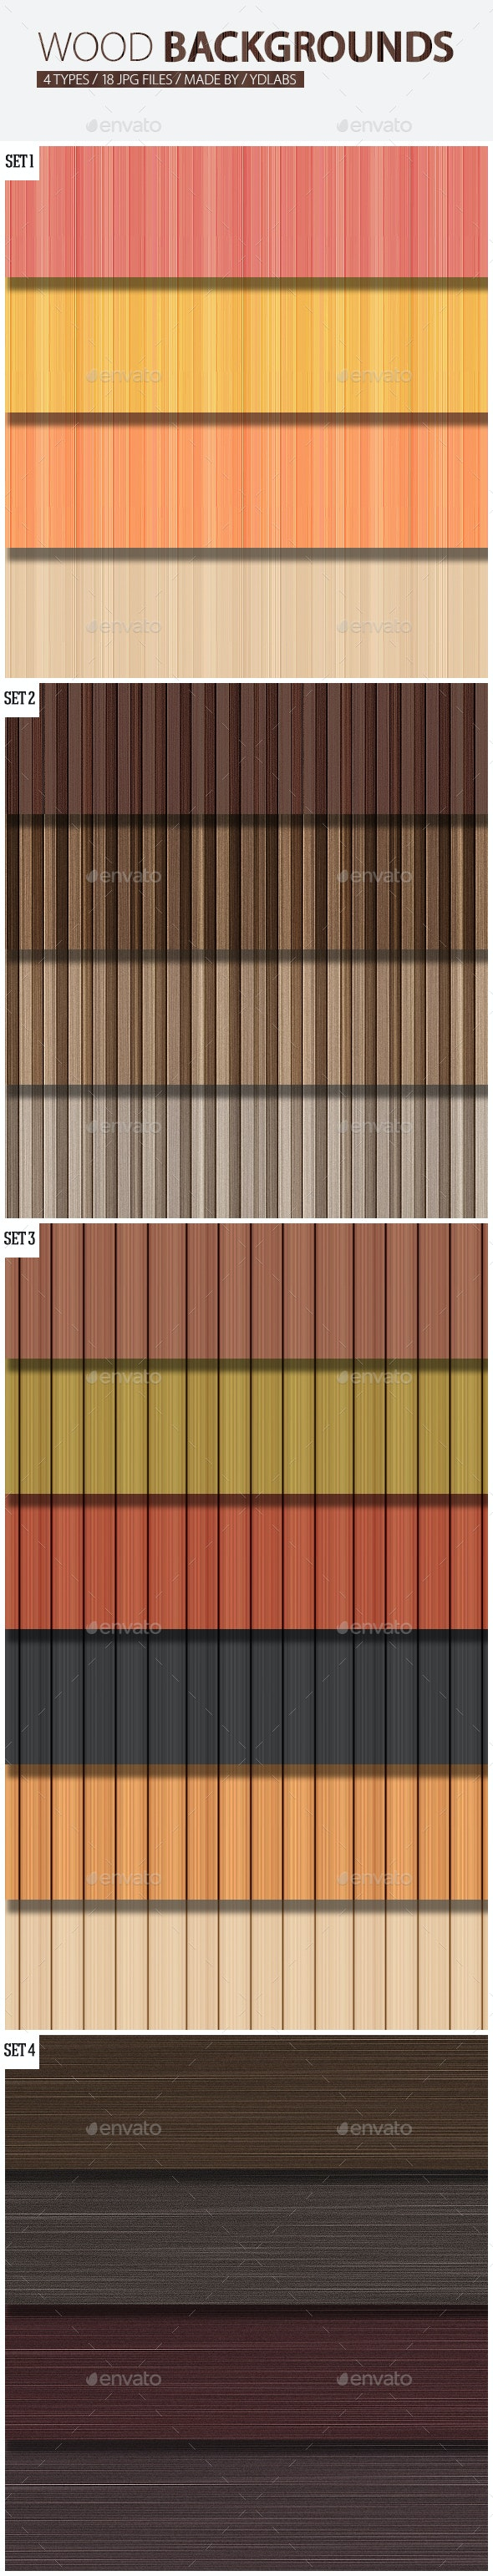 Wood Backgrounds Pack - Backgrounds Graphics